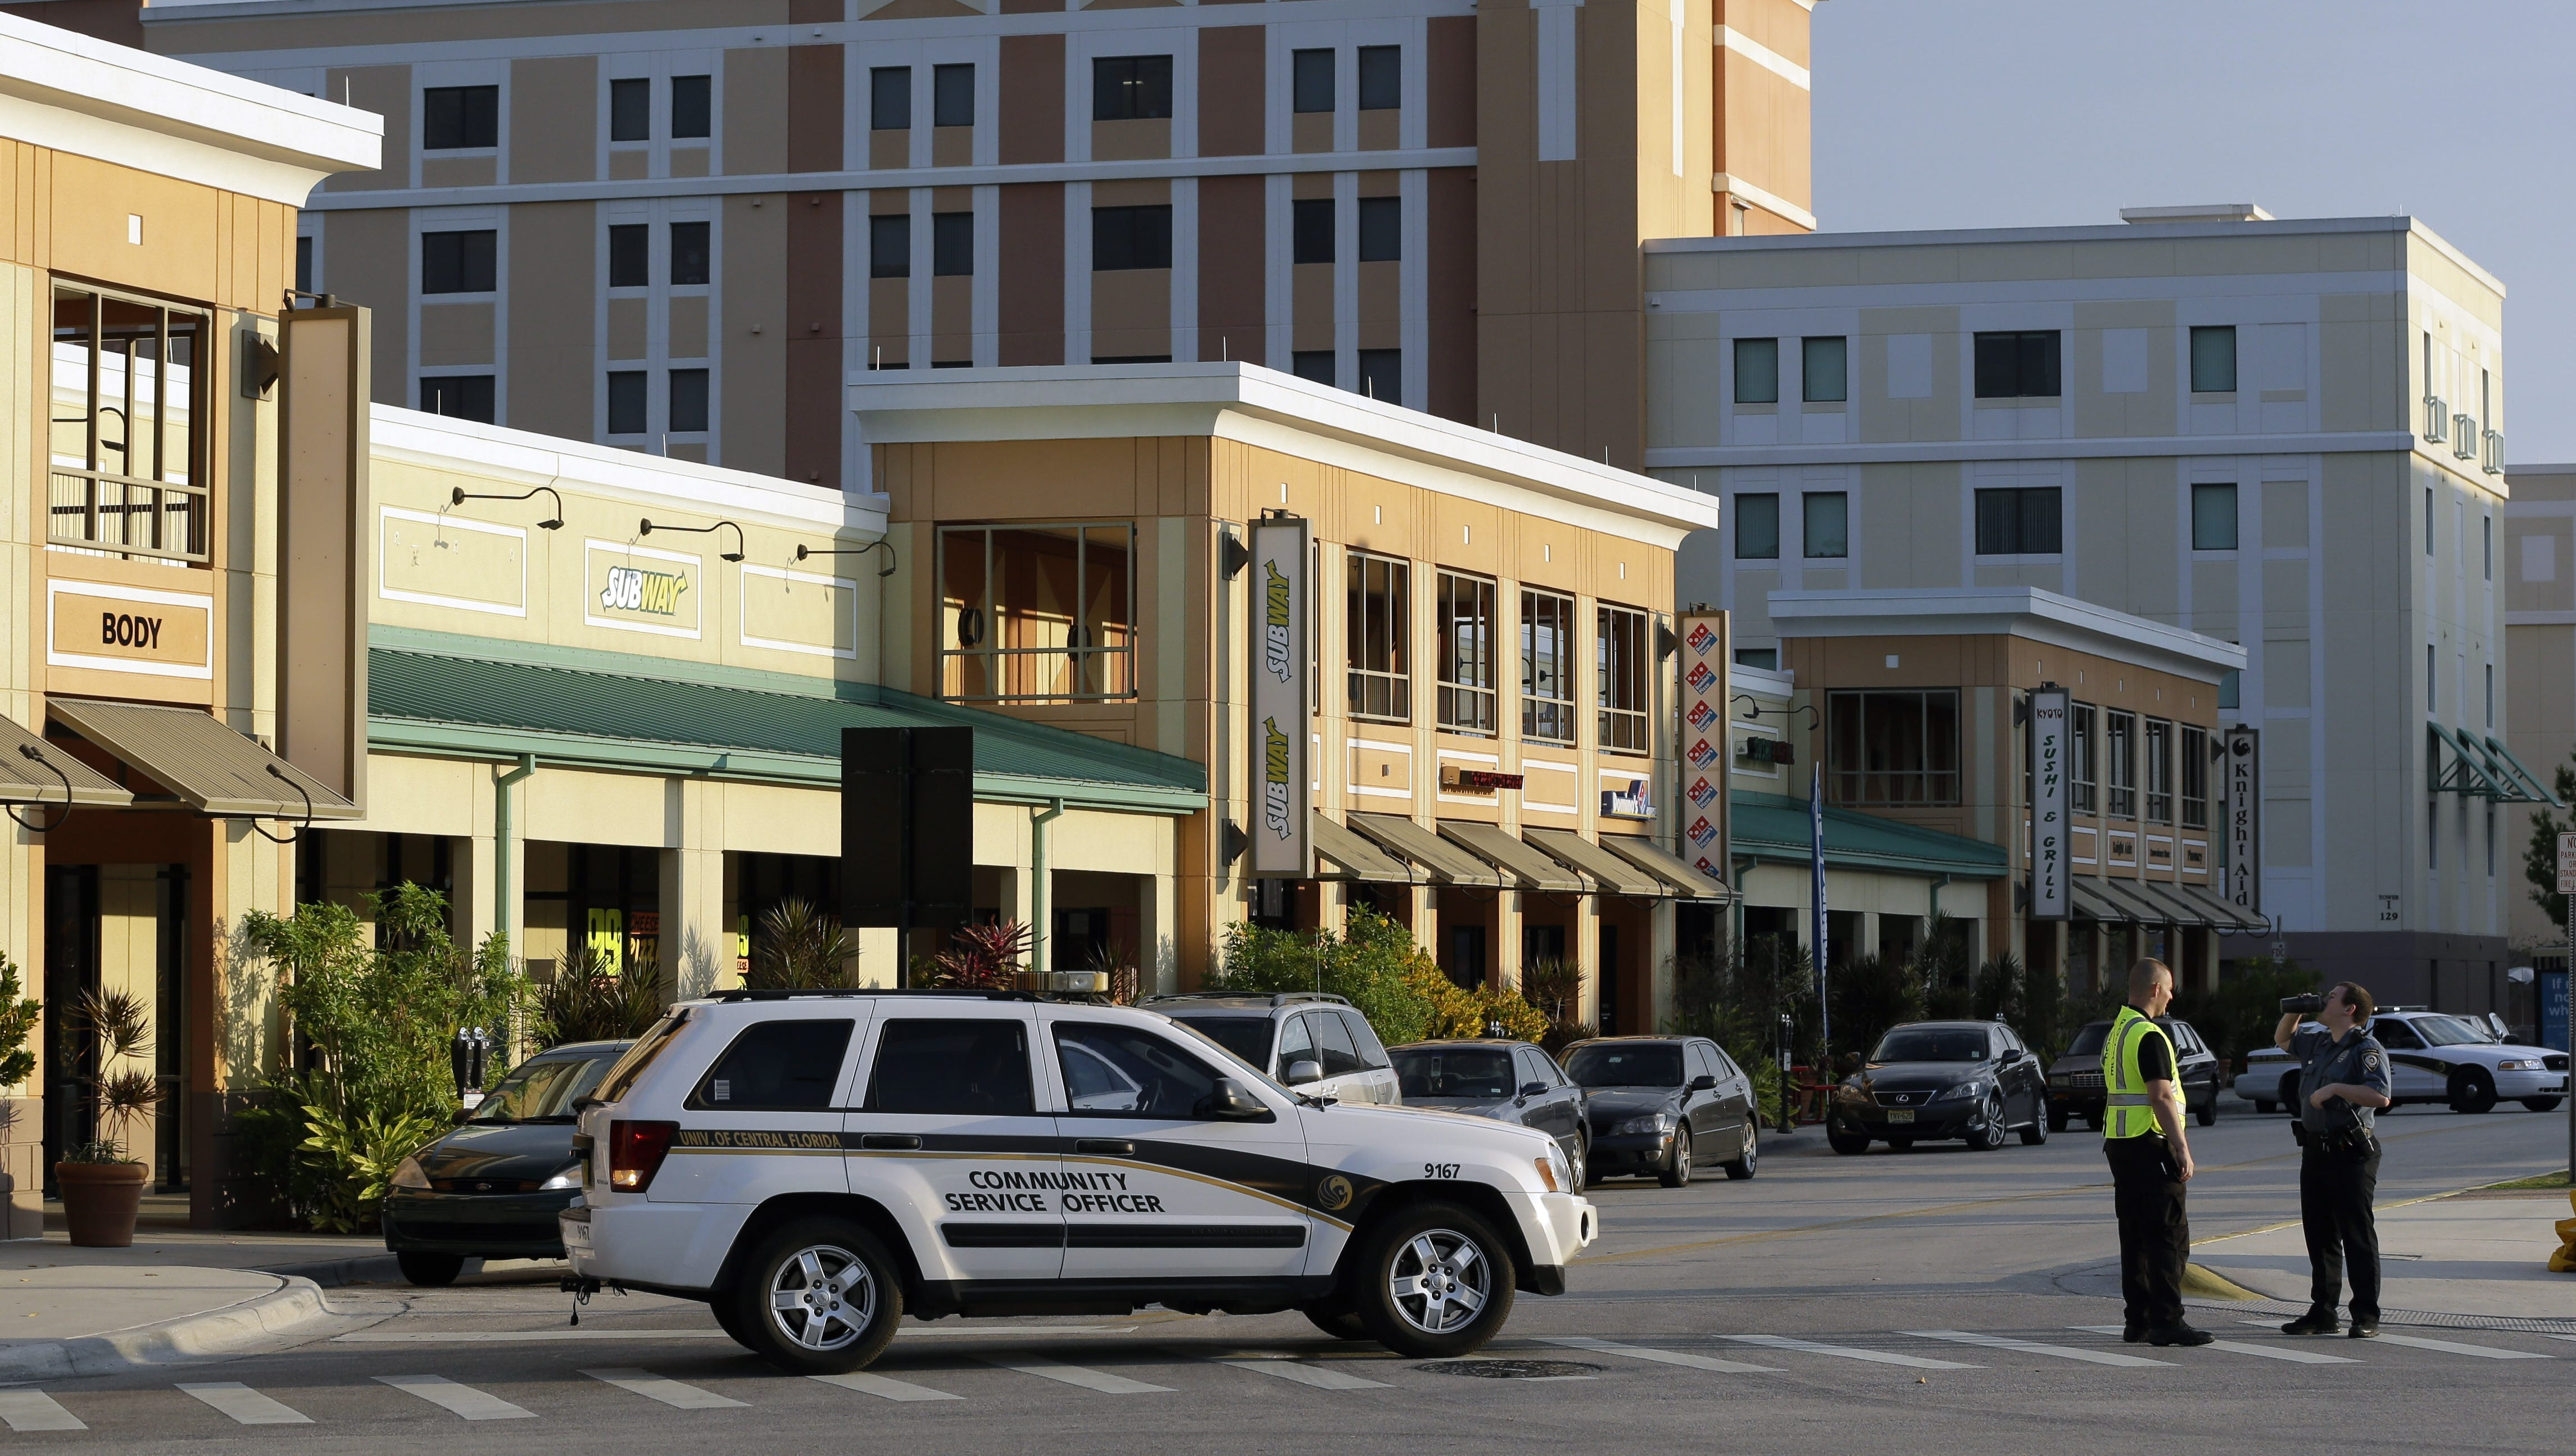 Bomb Found in University of Central Florida Dorm Room